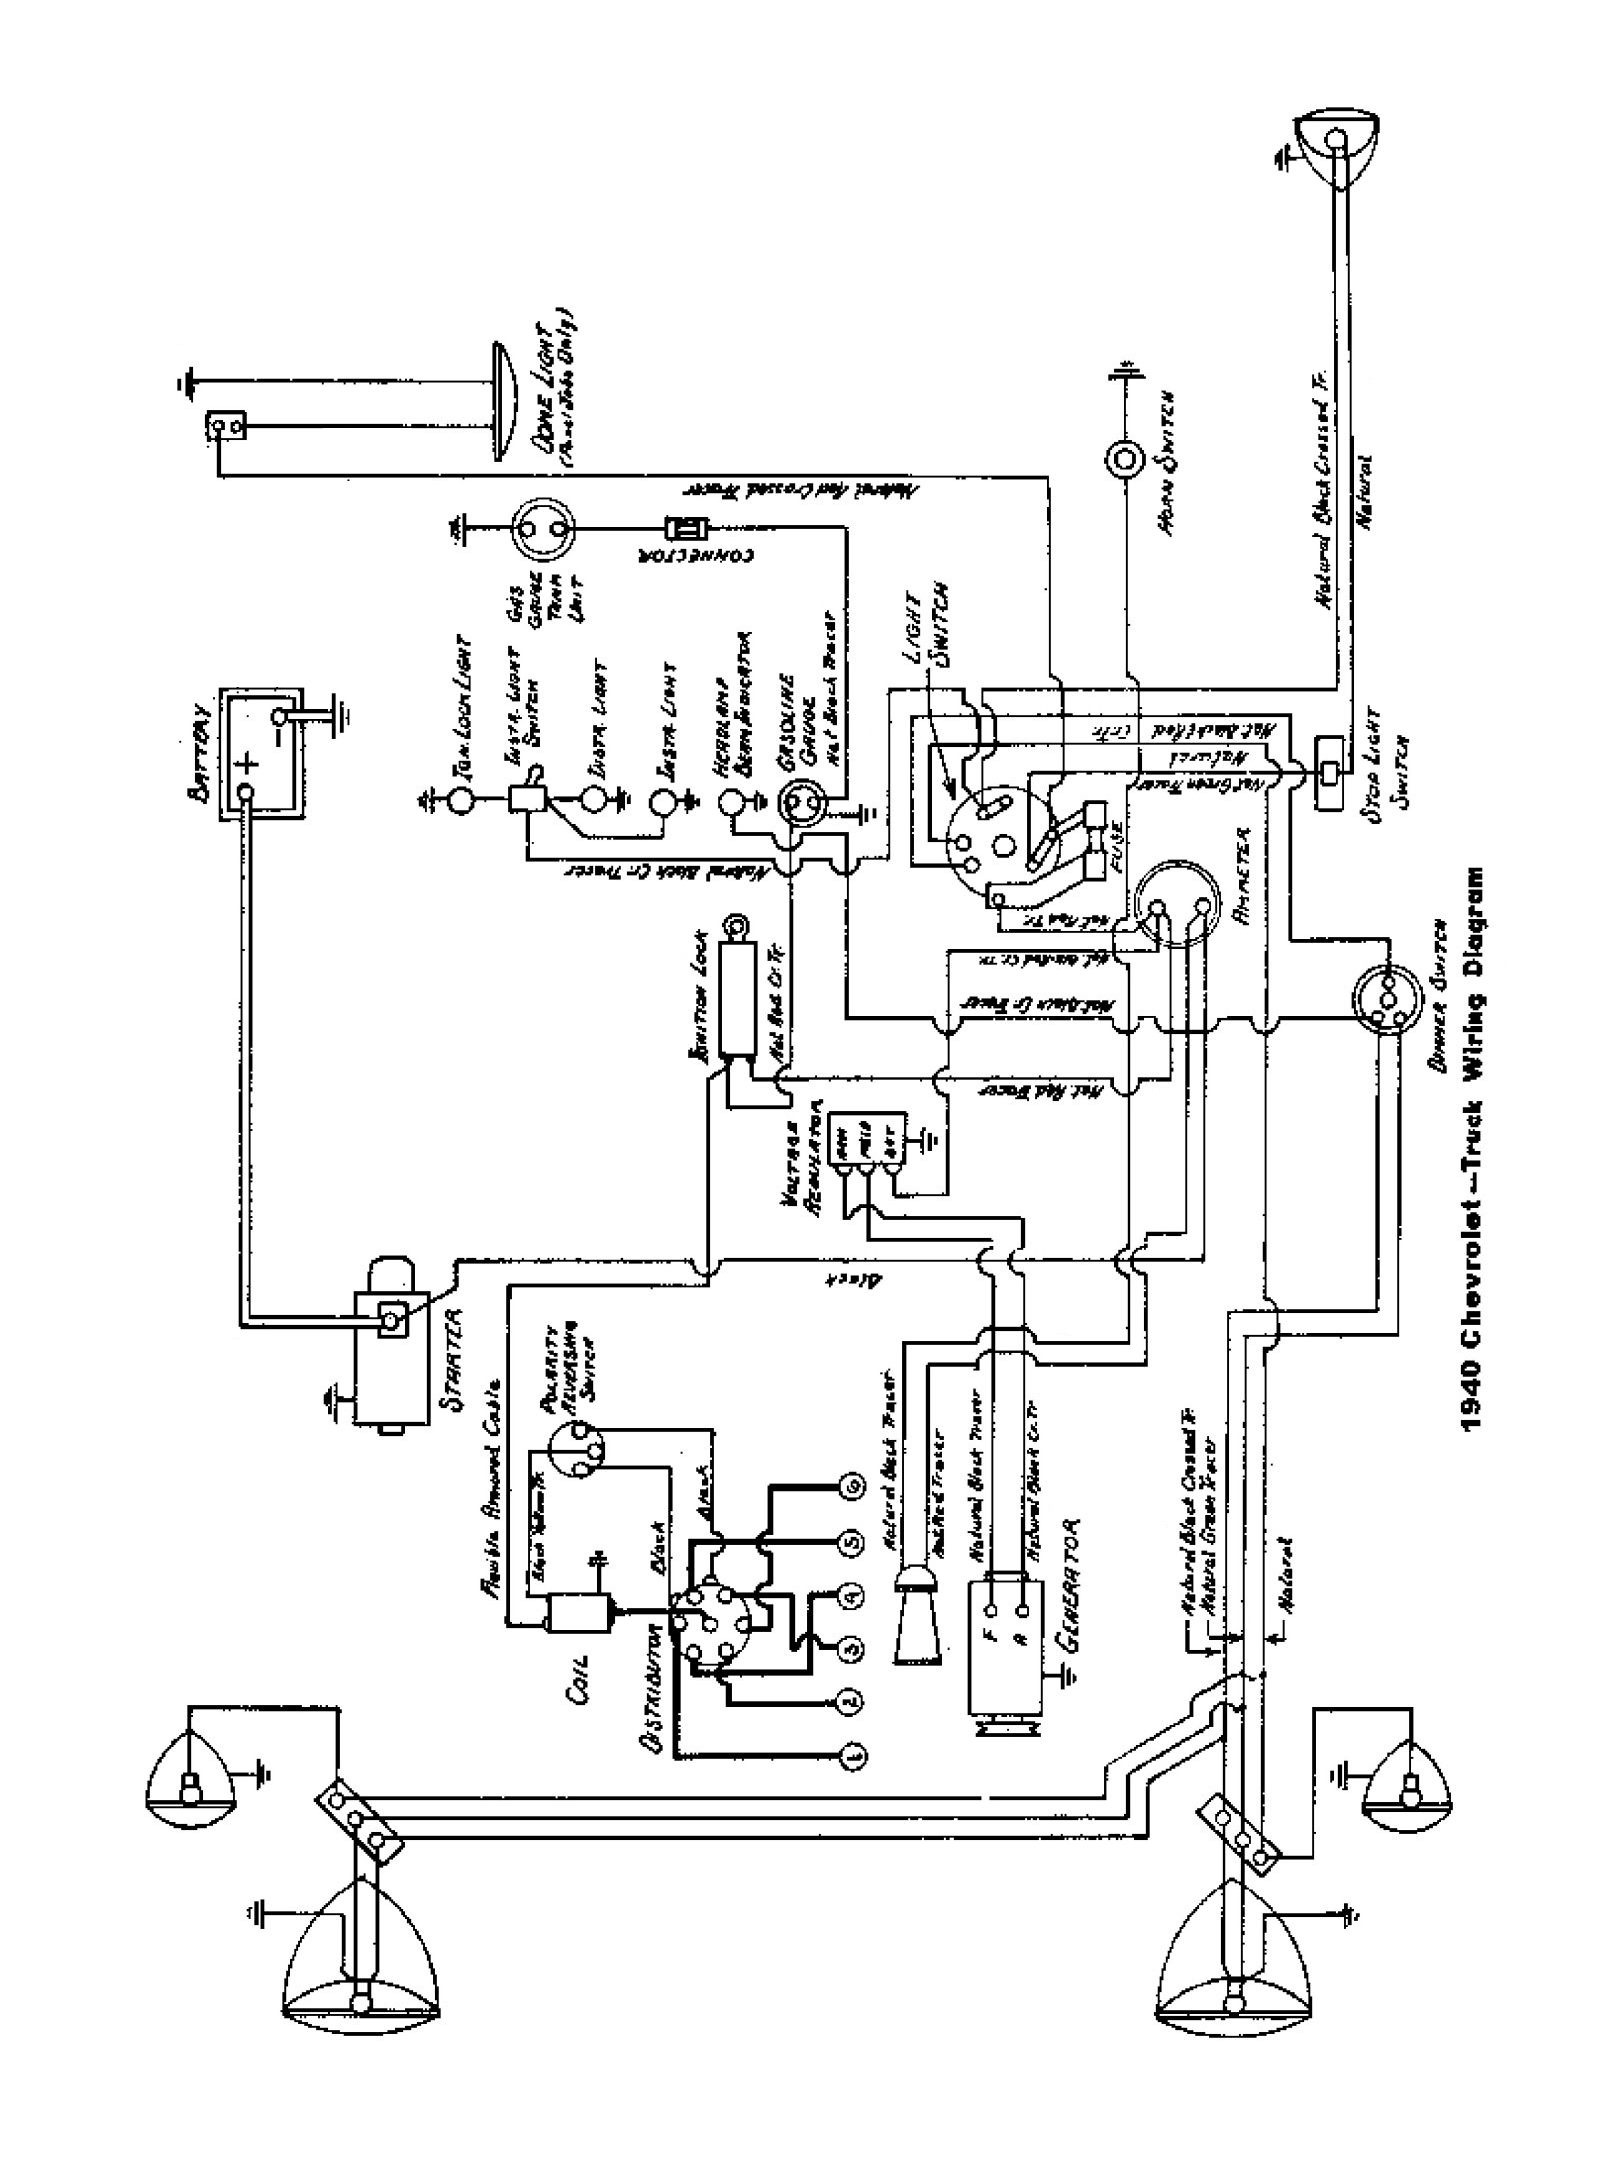 40truck chevy wiring diagrams 66 Chevy Headlight Switch Wiring Diagram at pacquiaovsvargaslive.co